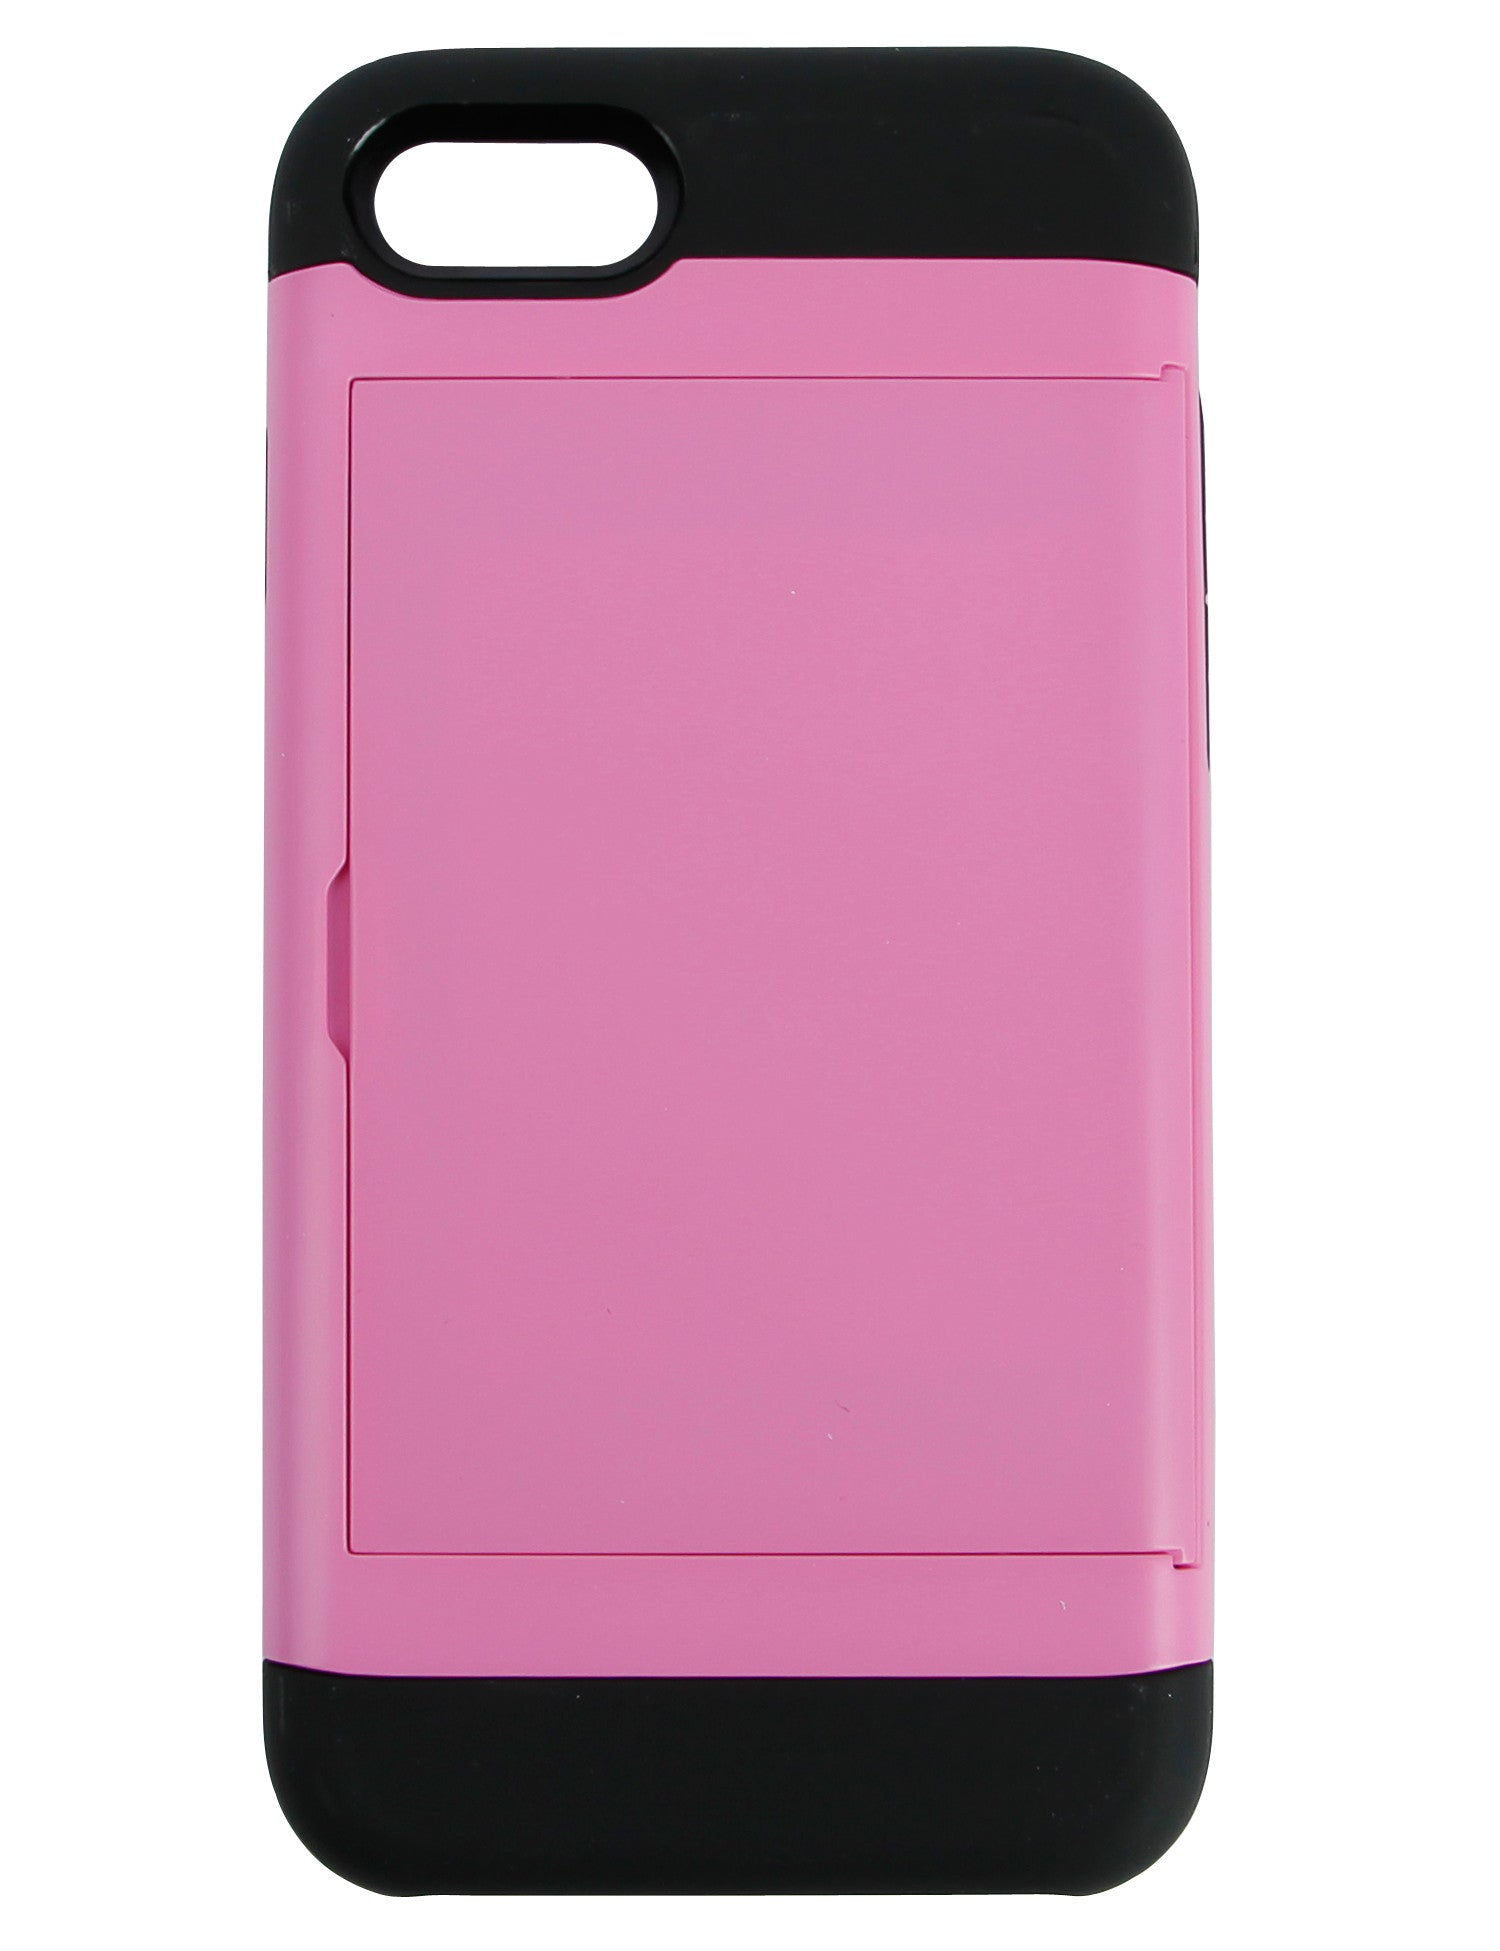 Image of Cardholder Case for iPhone 7 Pink